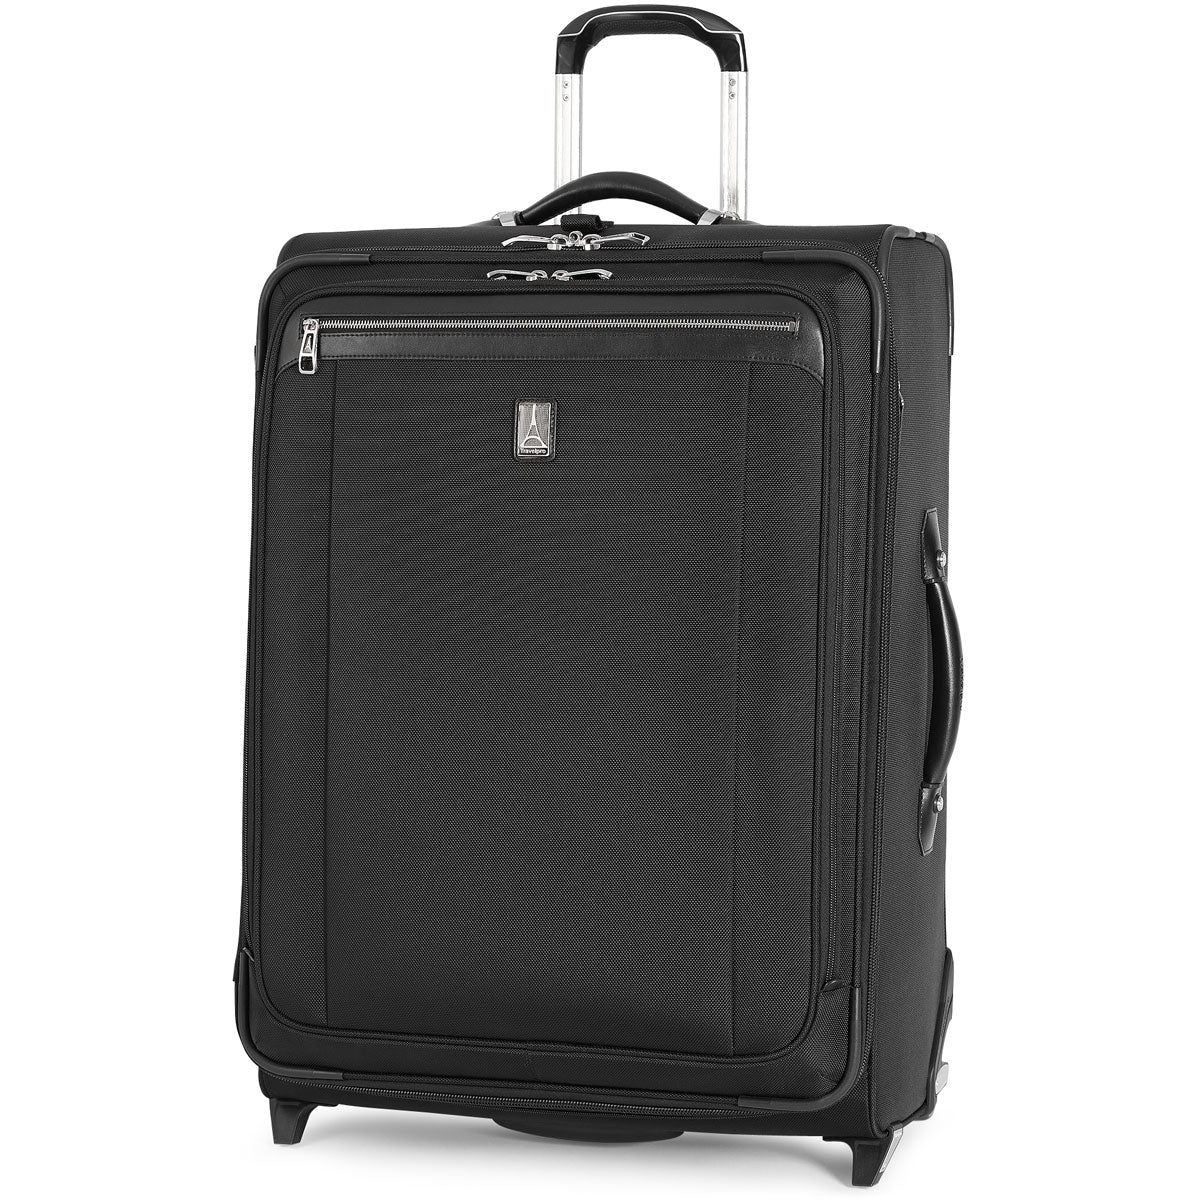 Travelpro Platinum Magna2 26in Expandable Rollaboard